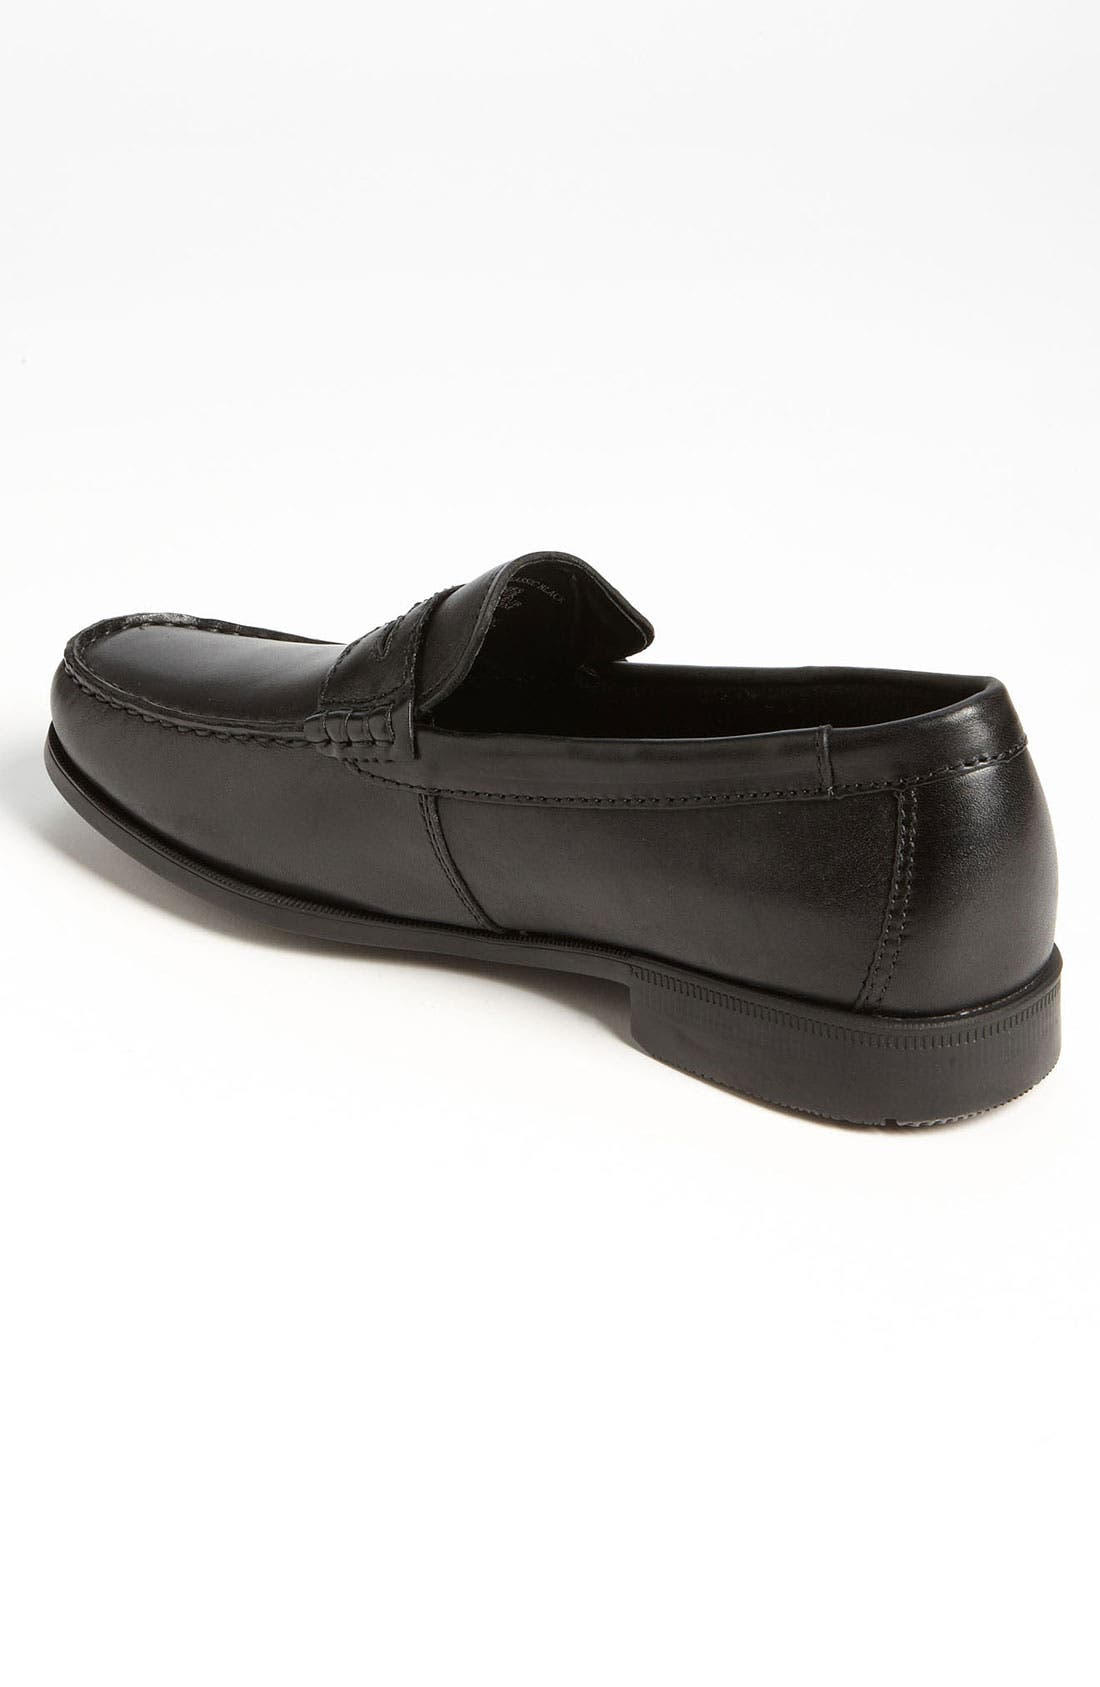 Alternate Image 2  - Sebago 'Back Bay Classic' Loafer (Online Only)